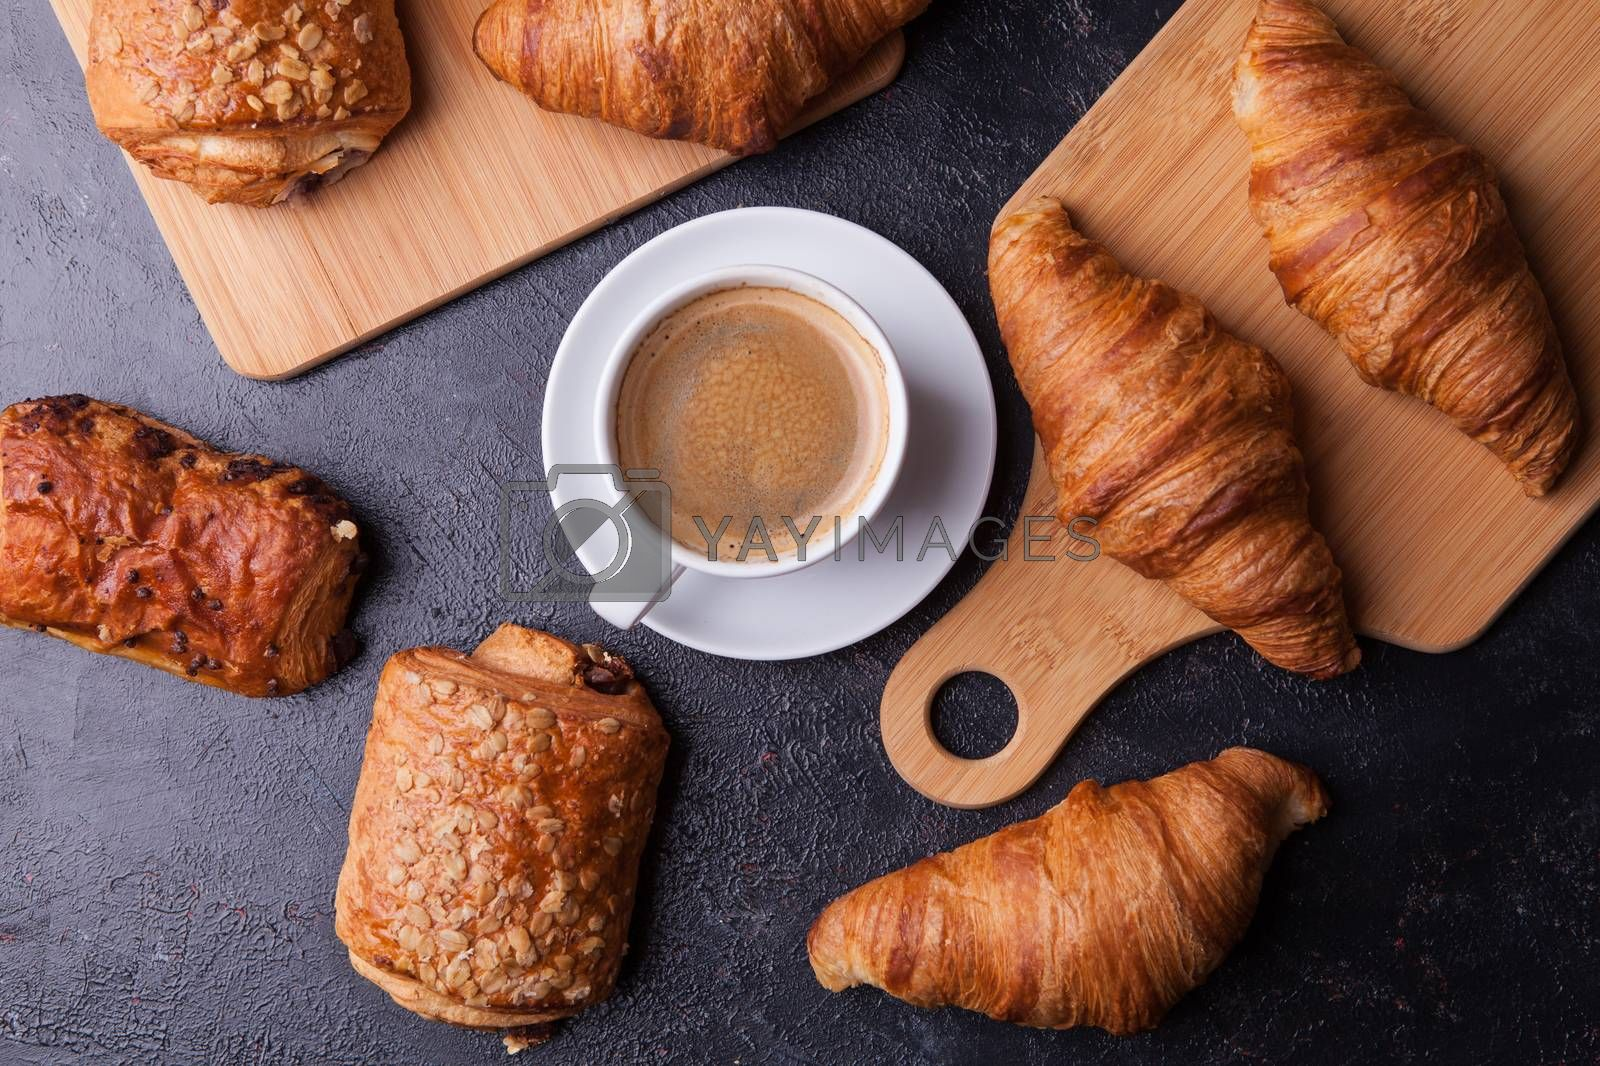 Assortment of pastries with coffee cup on wooden table background. French cuisine.